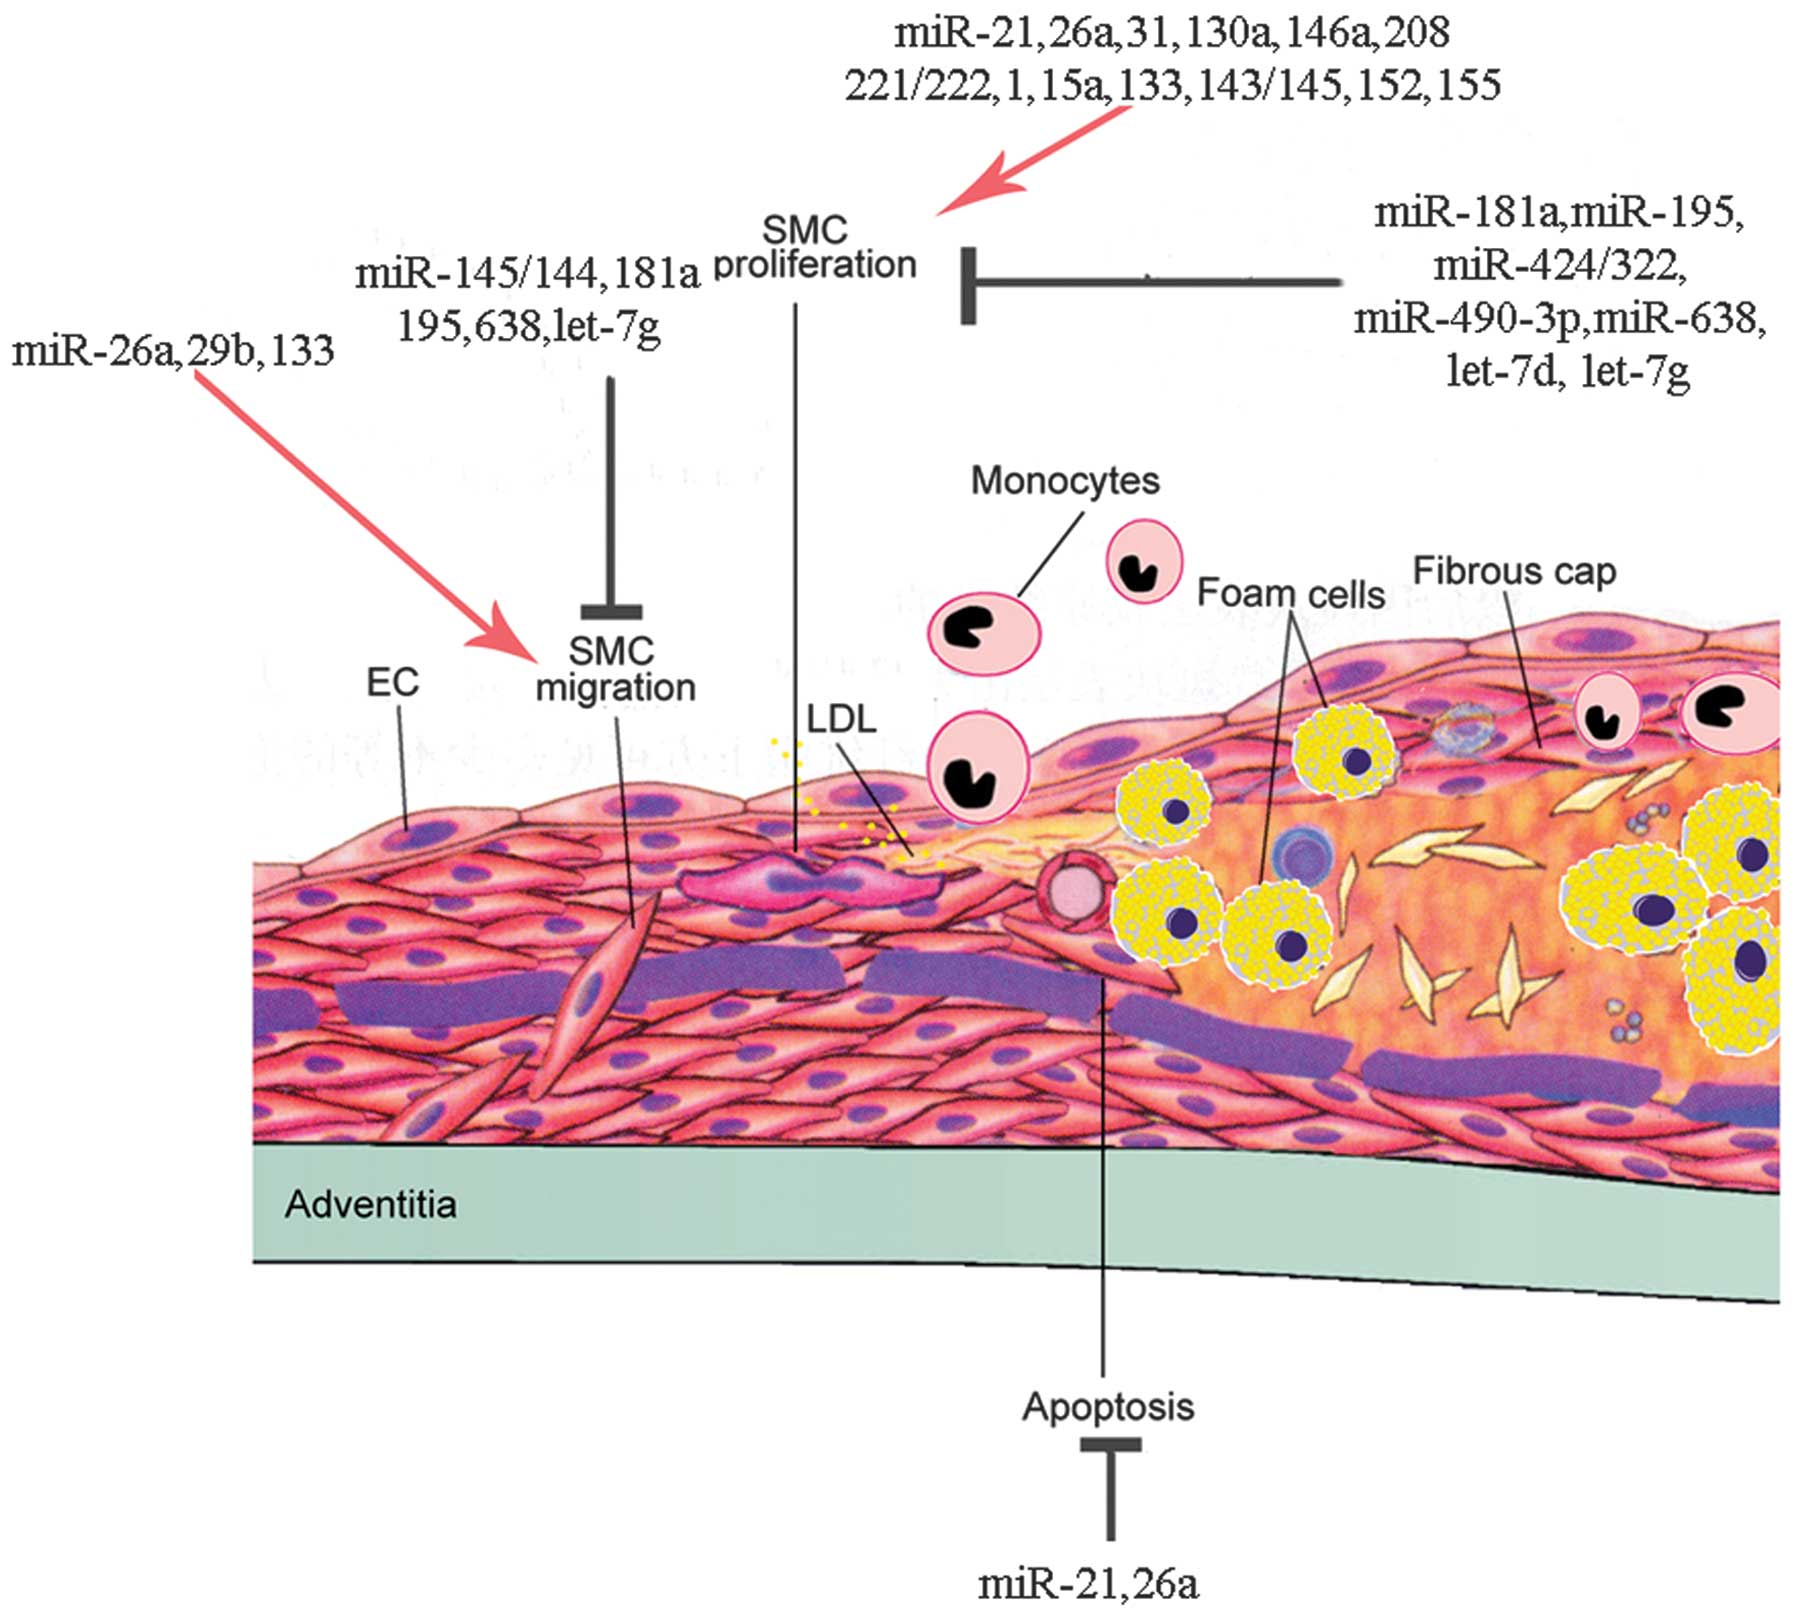 apoptosis of airway epithelial cells induced by corticosteroids